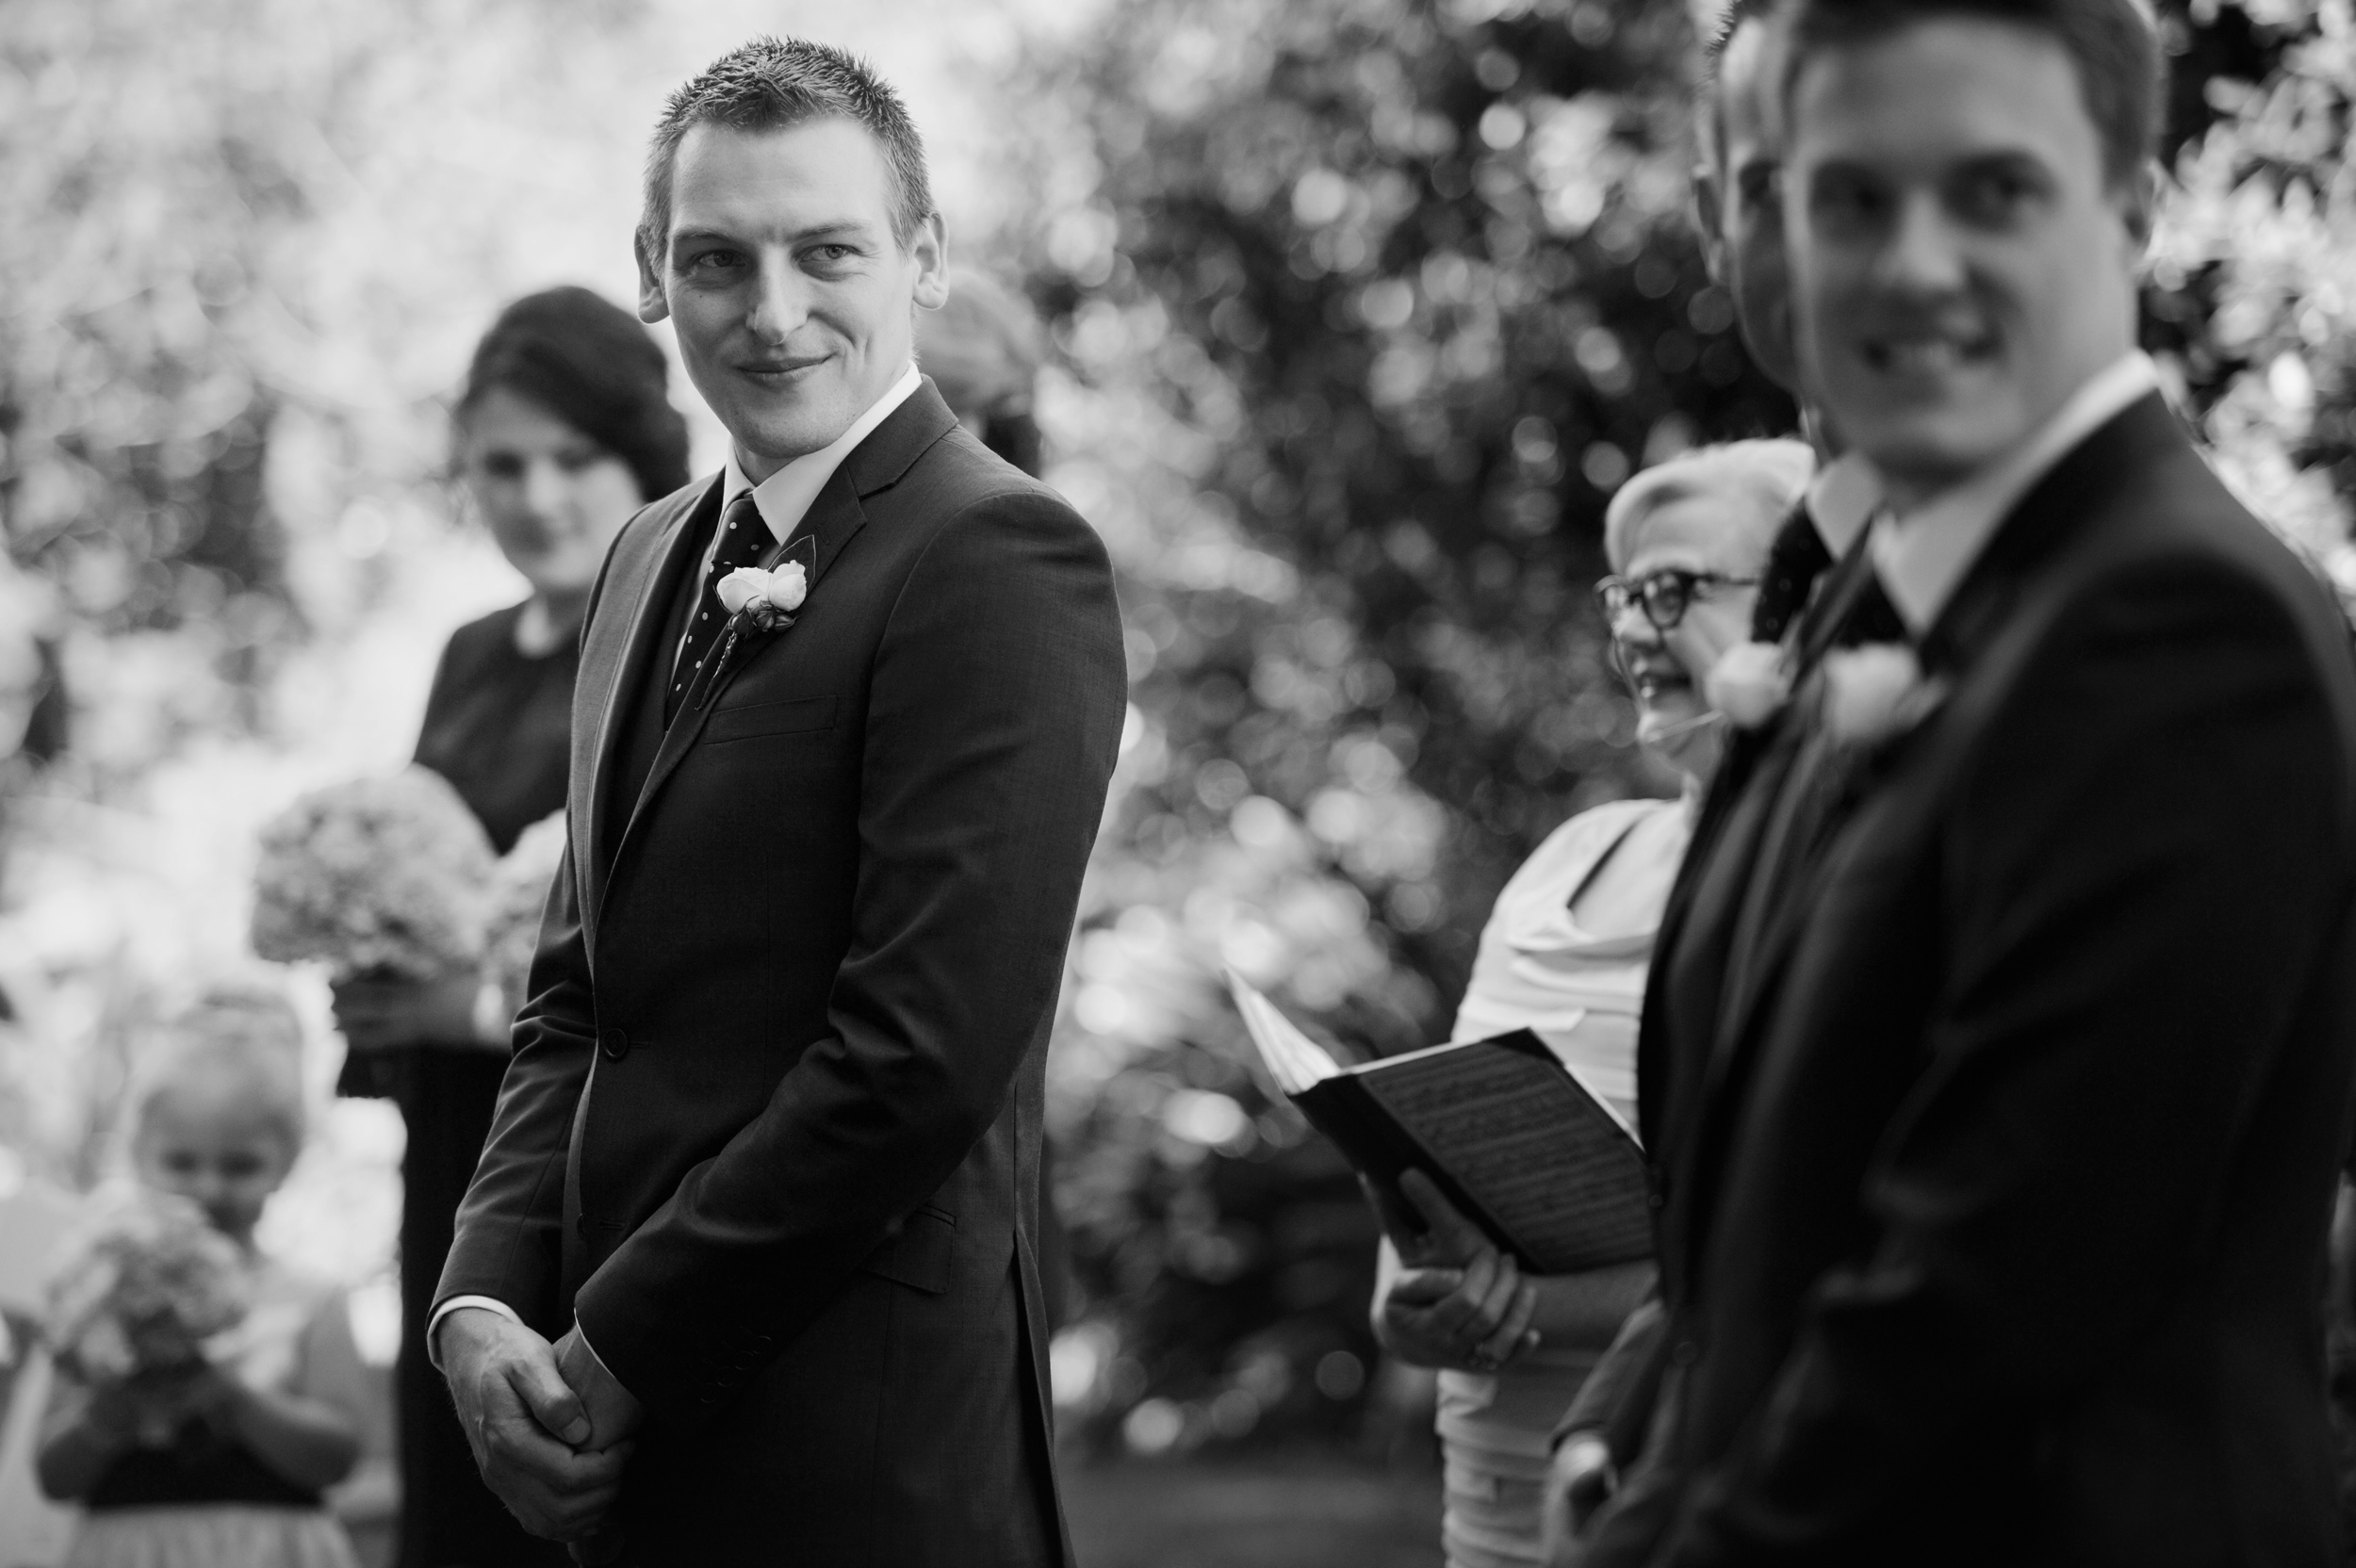 euroa_butter_factory_wedding_photography_14.jpg